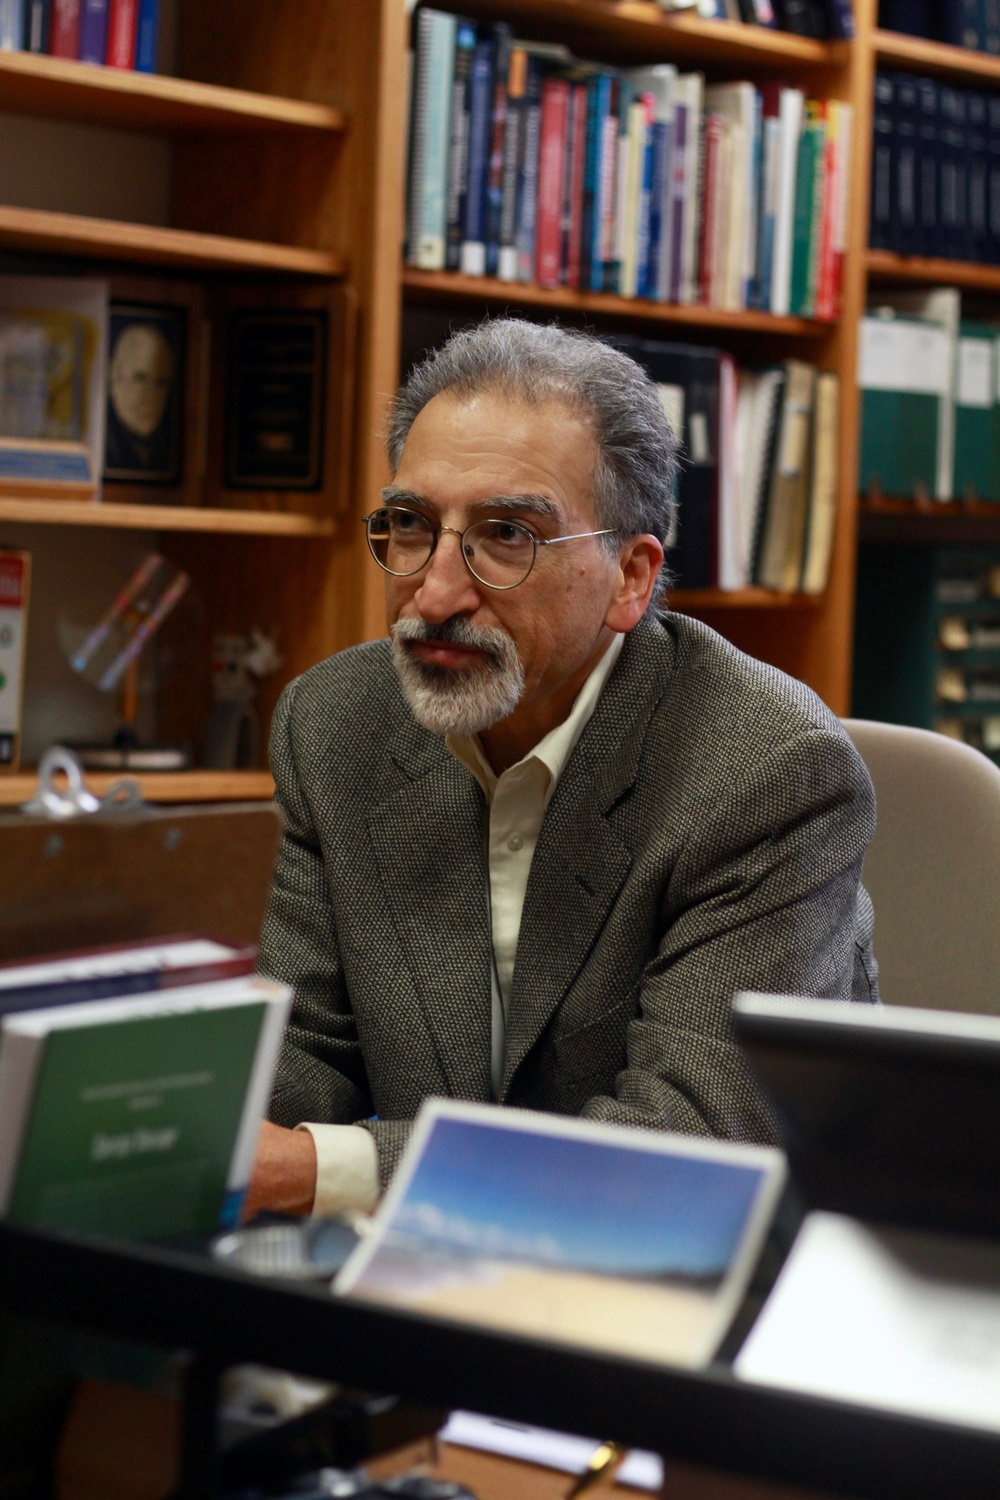 SEAS professor Michael J. Aziz received an Eni Award for his research with chemistry professor Roy G. Gordon on organic batteries.